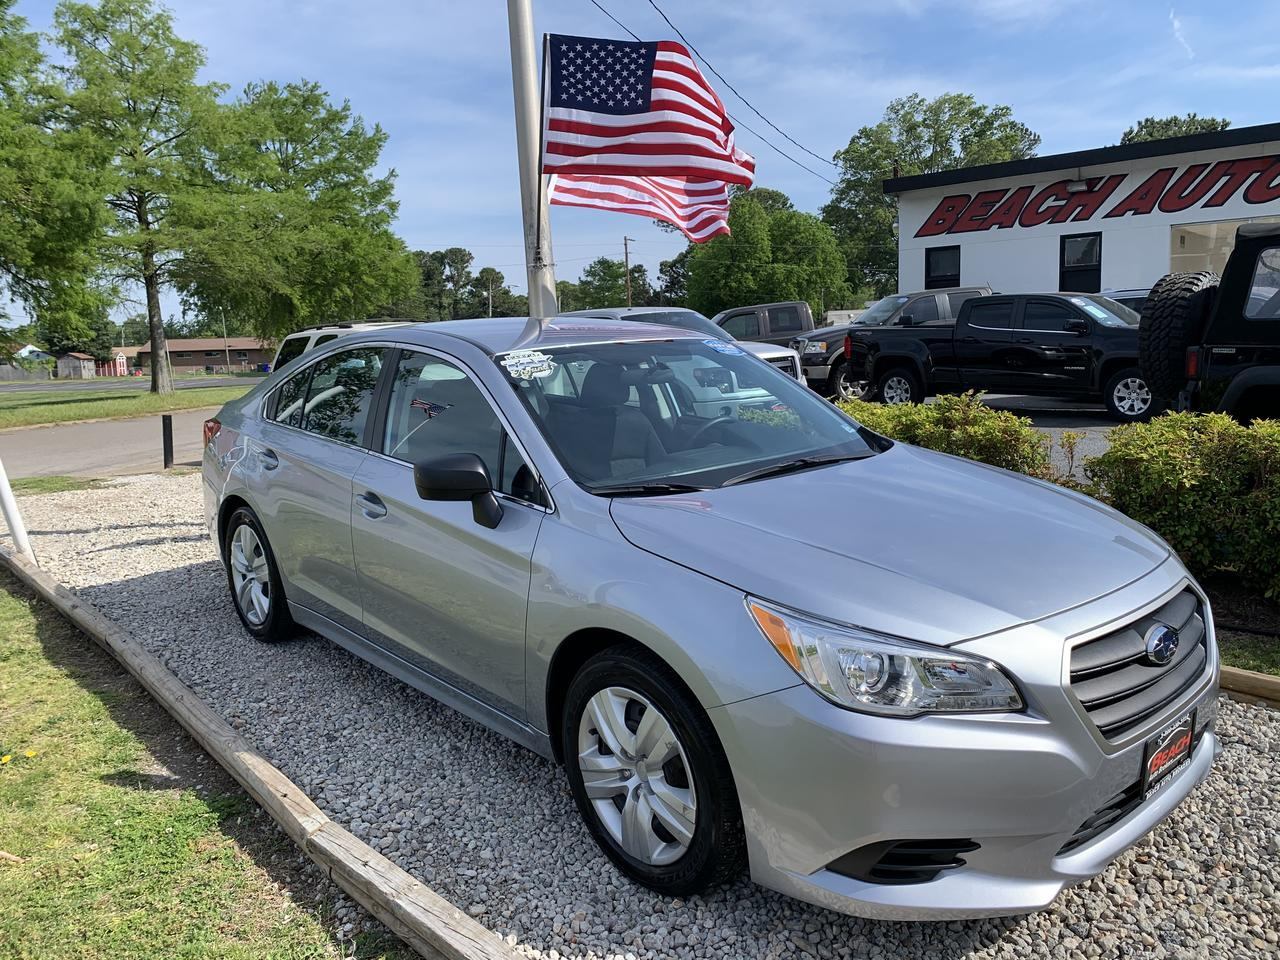 2016 SUBARU LEGACY I, WARRANTY, BACKUP CAMERA, BLUETOOTH, AUX/USB PORT, LOW MILES, CLEAN! Norfolk VA